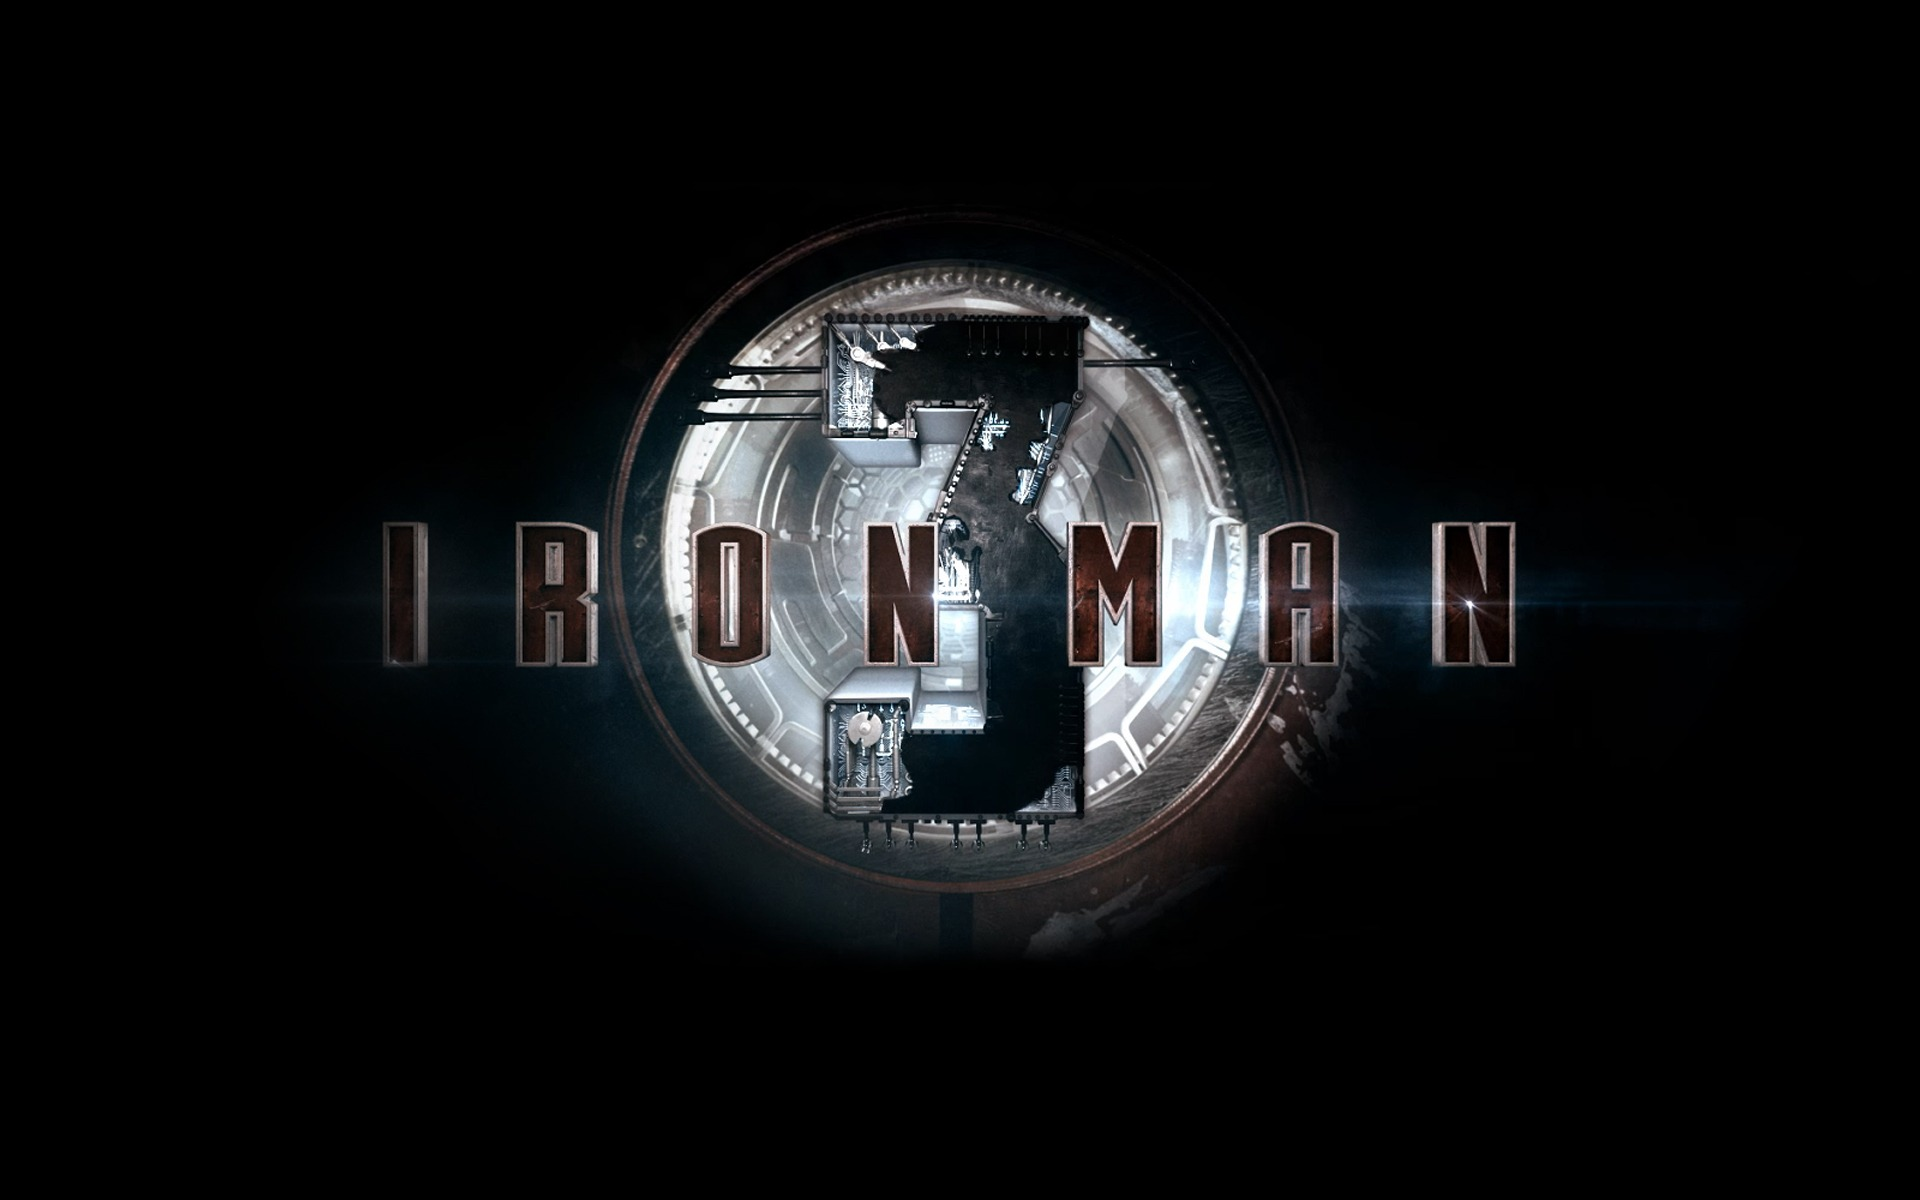 Ironman 3 Hd Wallpaper Wallpaper